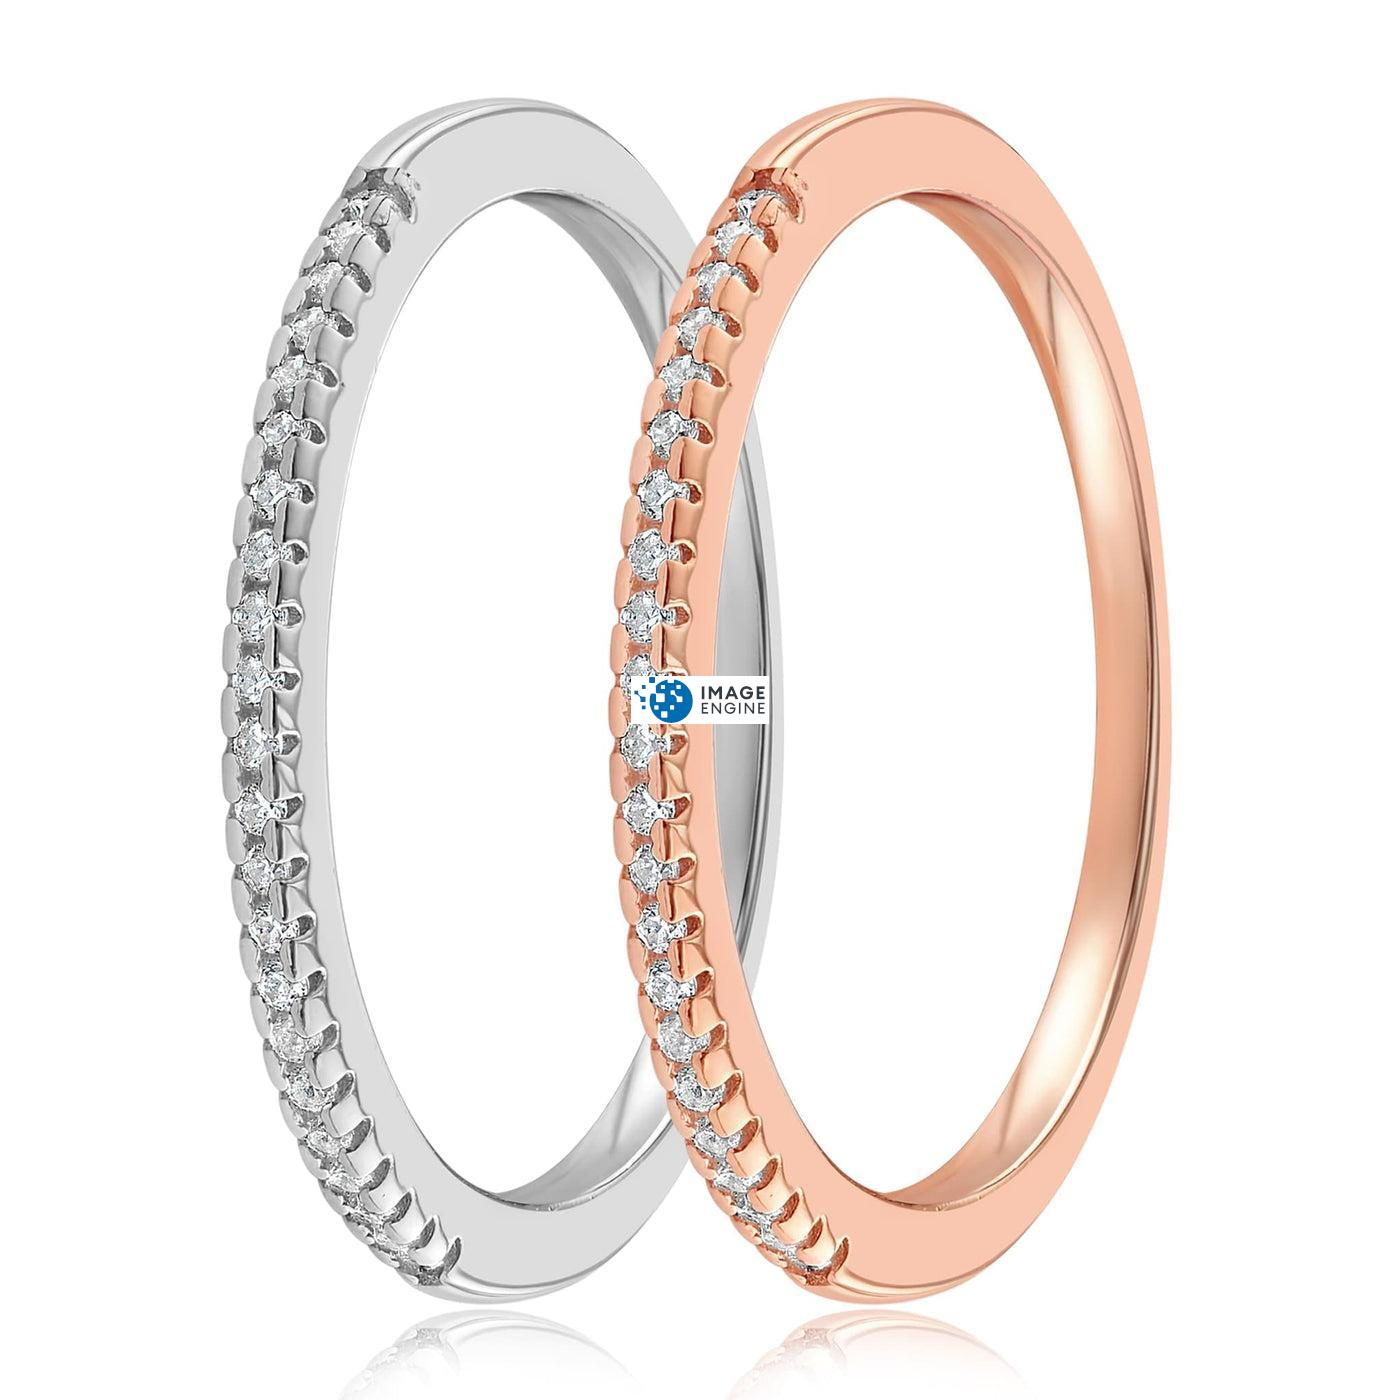 Brianna Bezel Ring - SideBy Side - 925 Sterling Silver and 18K Rose Gold Vermeil